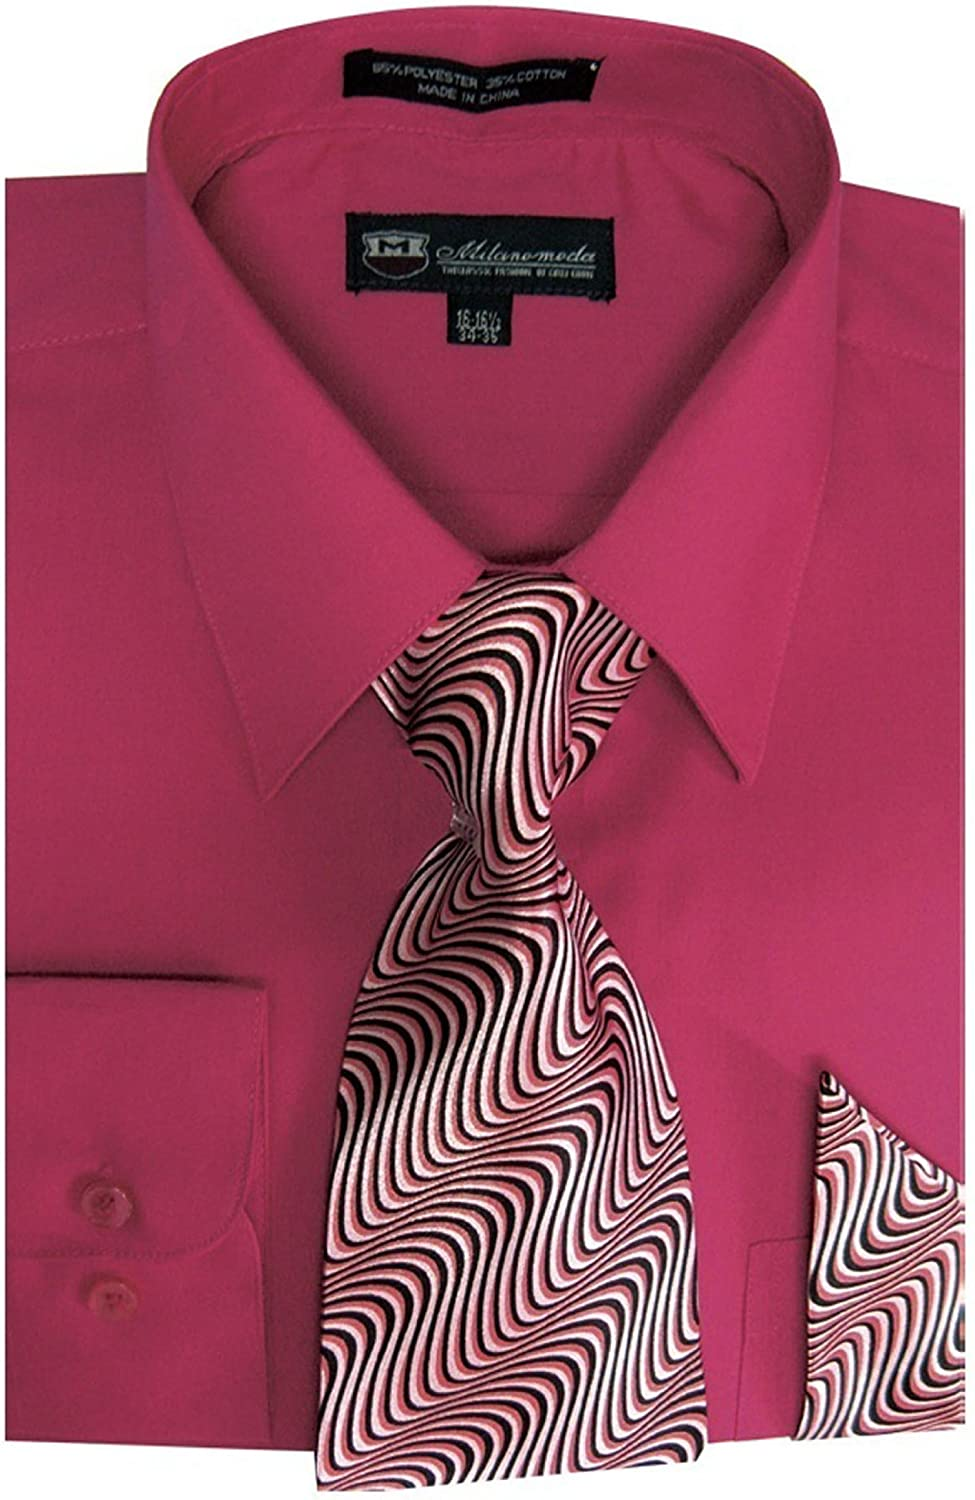 TDC Collection Milano Moda Men's Basic Dress Shirt With Matching Tie And Handkerchief 18-18 1/2 36-37 Fushion